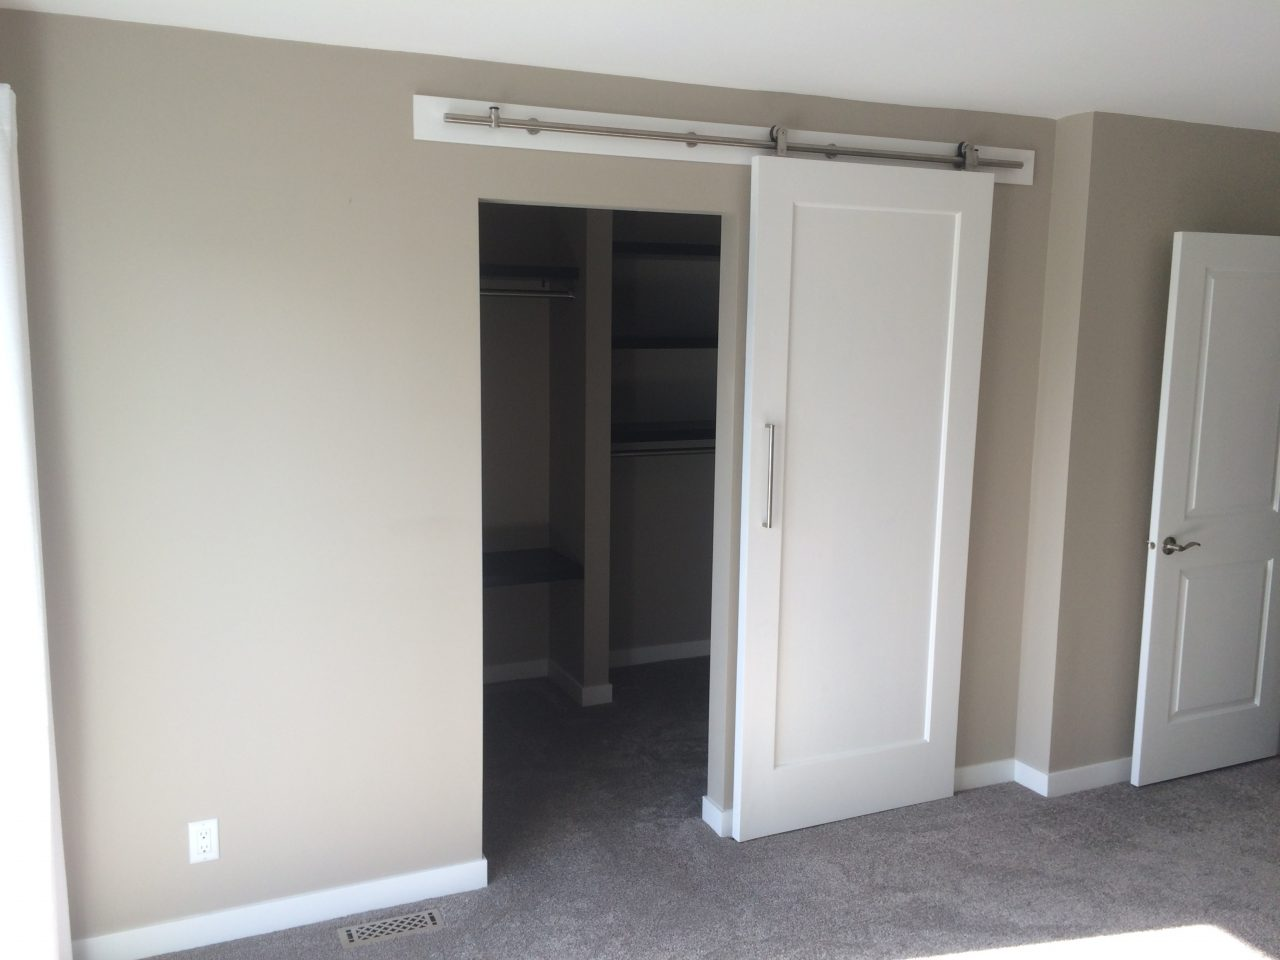 walk-in-closet-construction